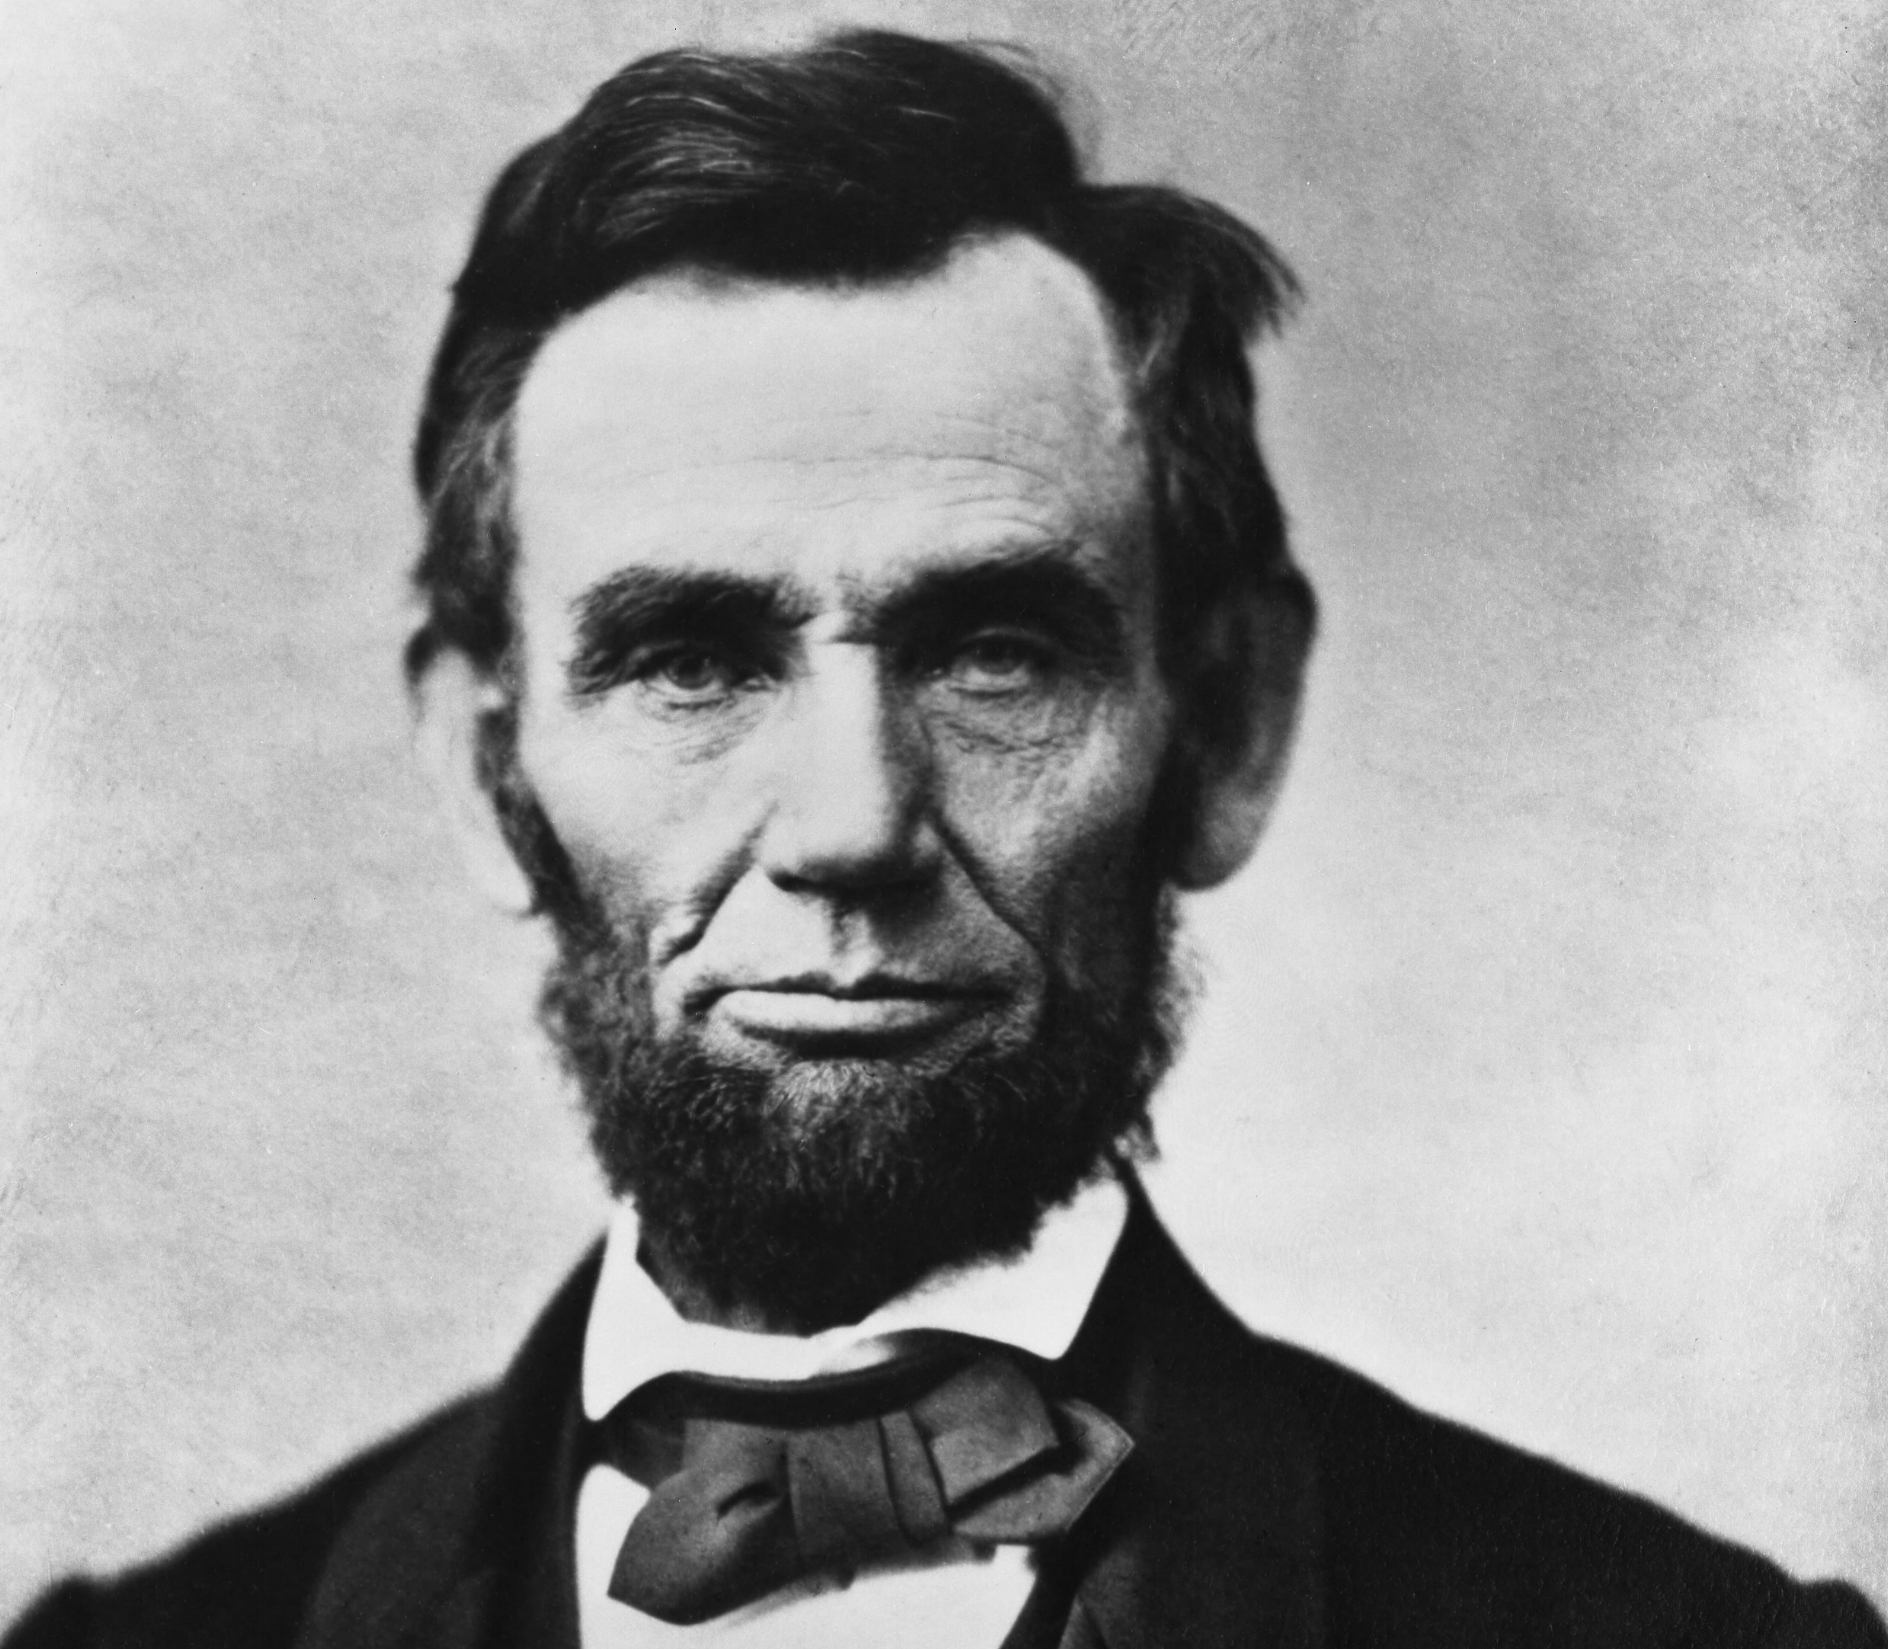 Abraham_Lincoln_head_on_shoulders_photo_portrait.jpg